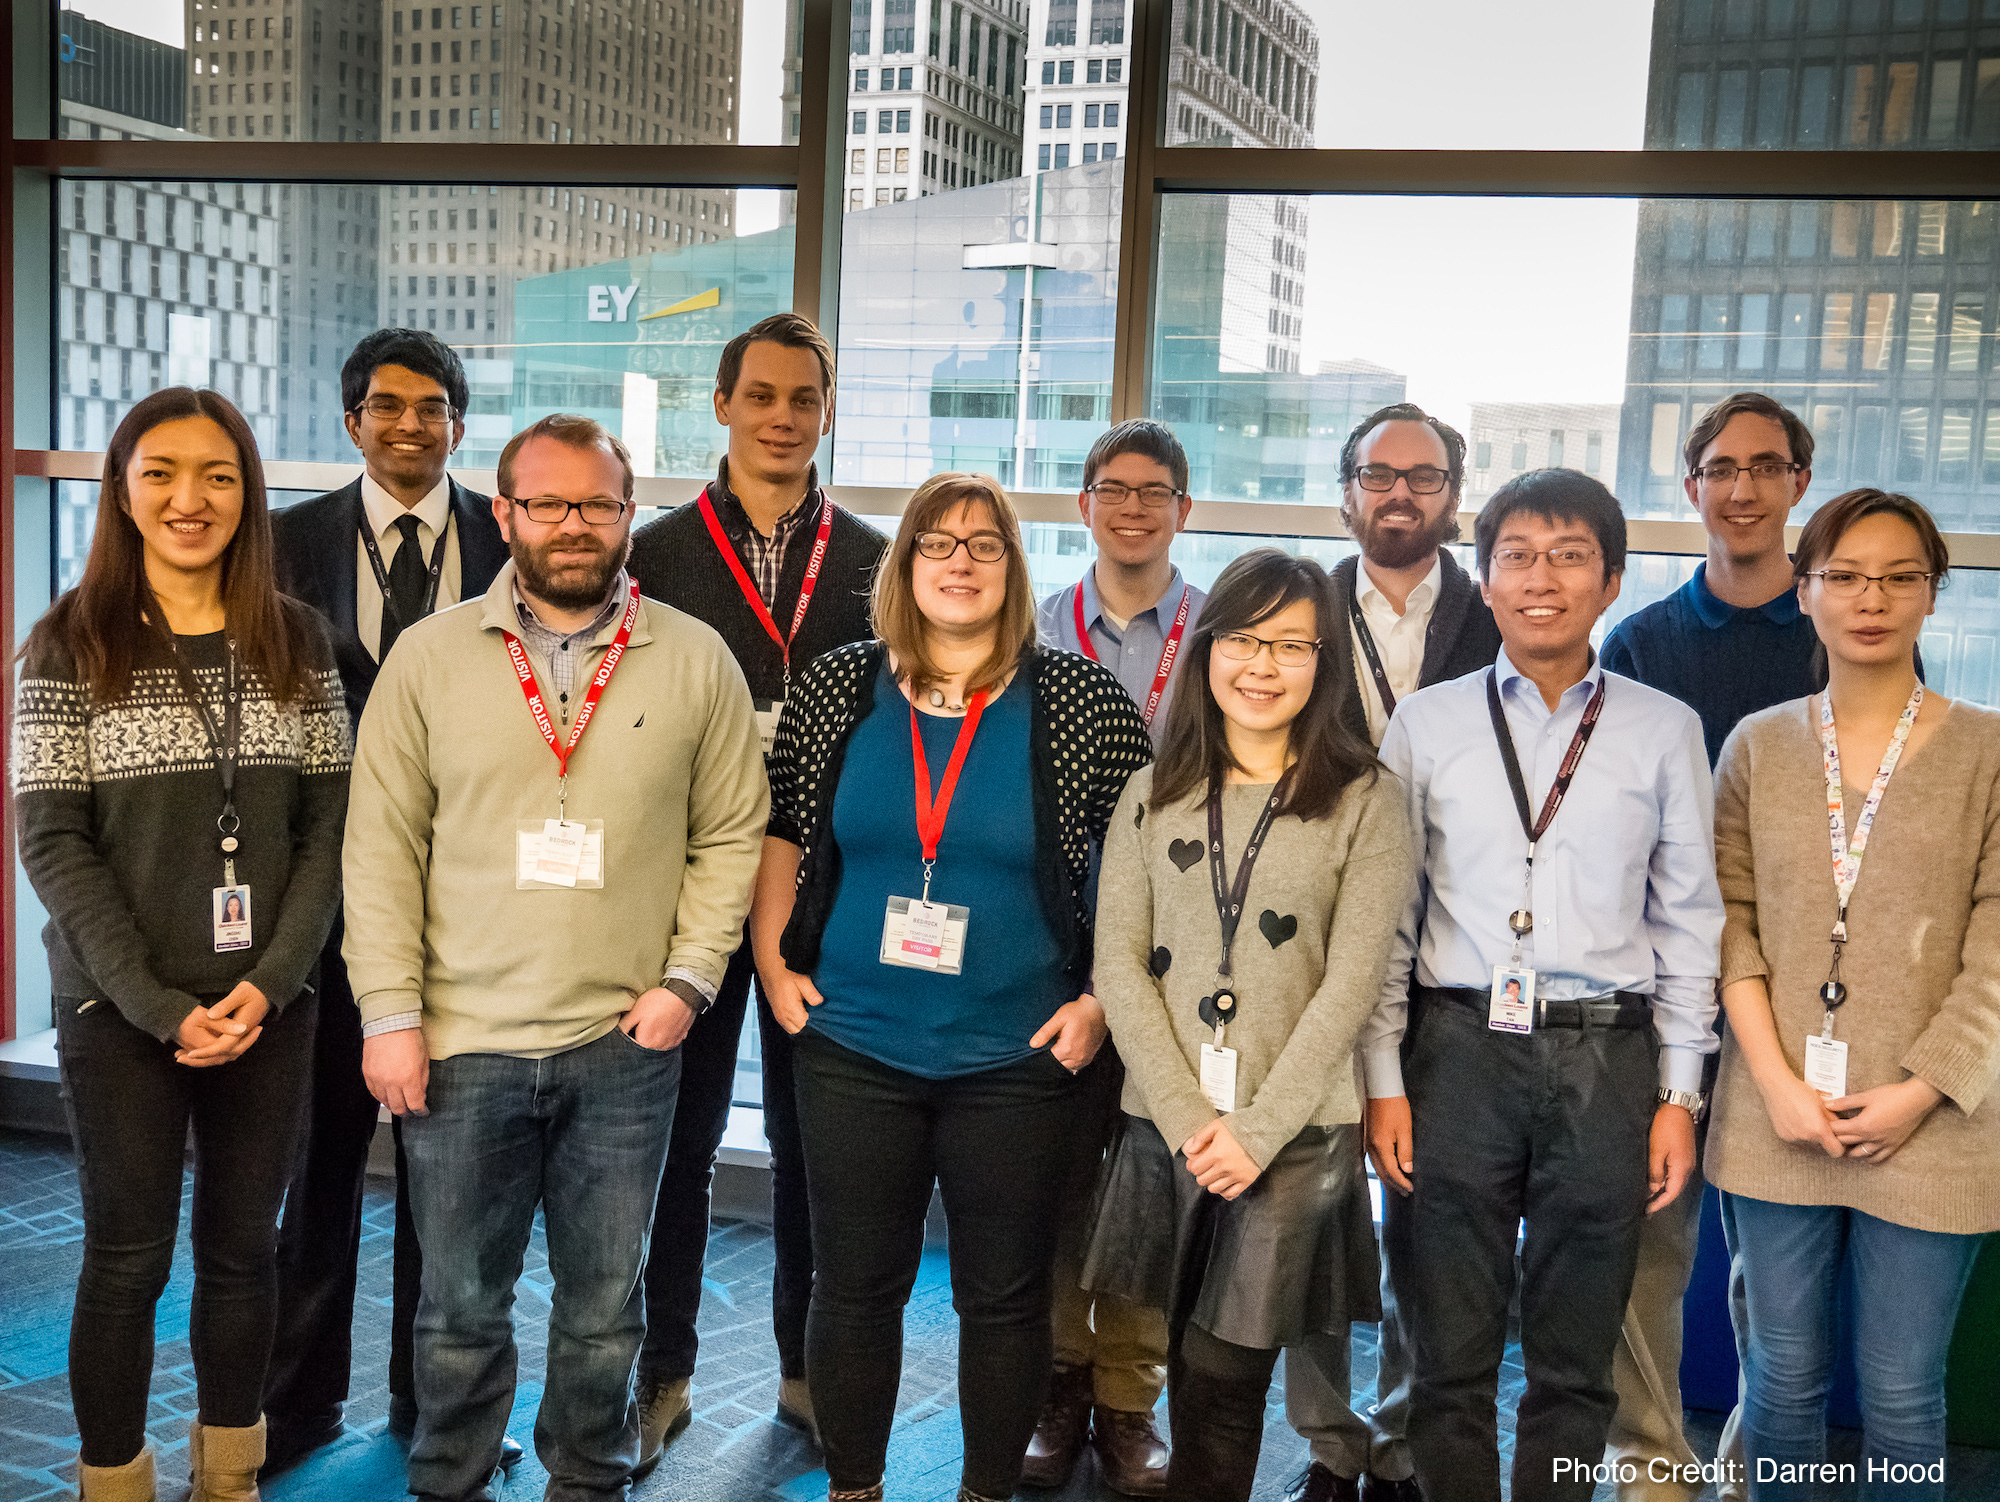 Student data science competition winners visit Quicken Loans